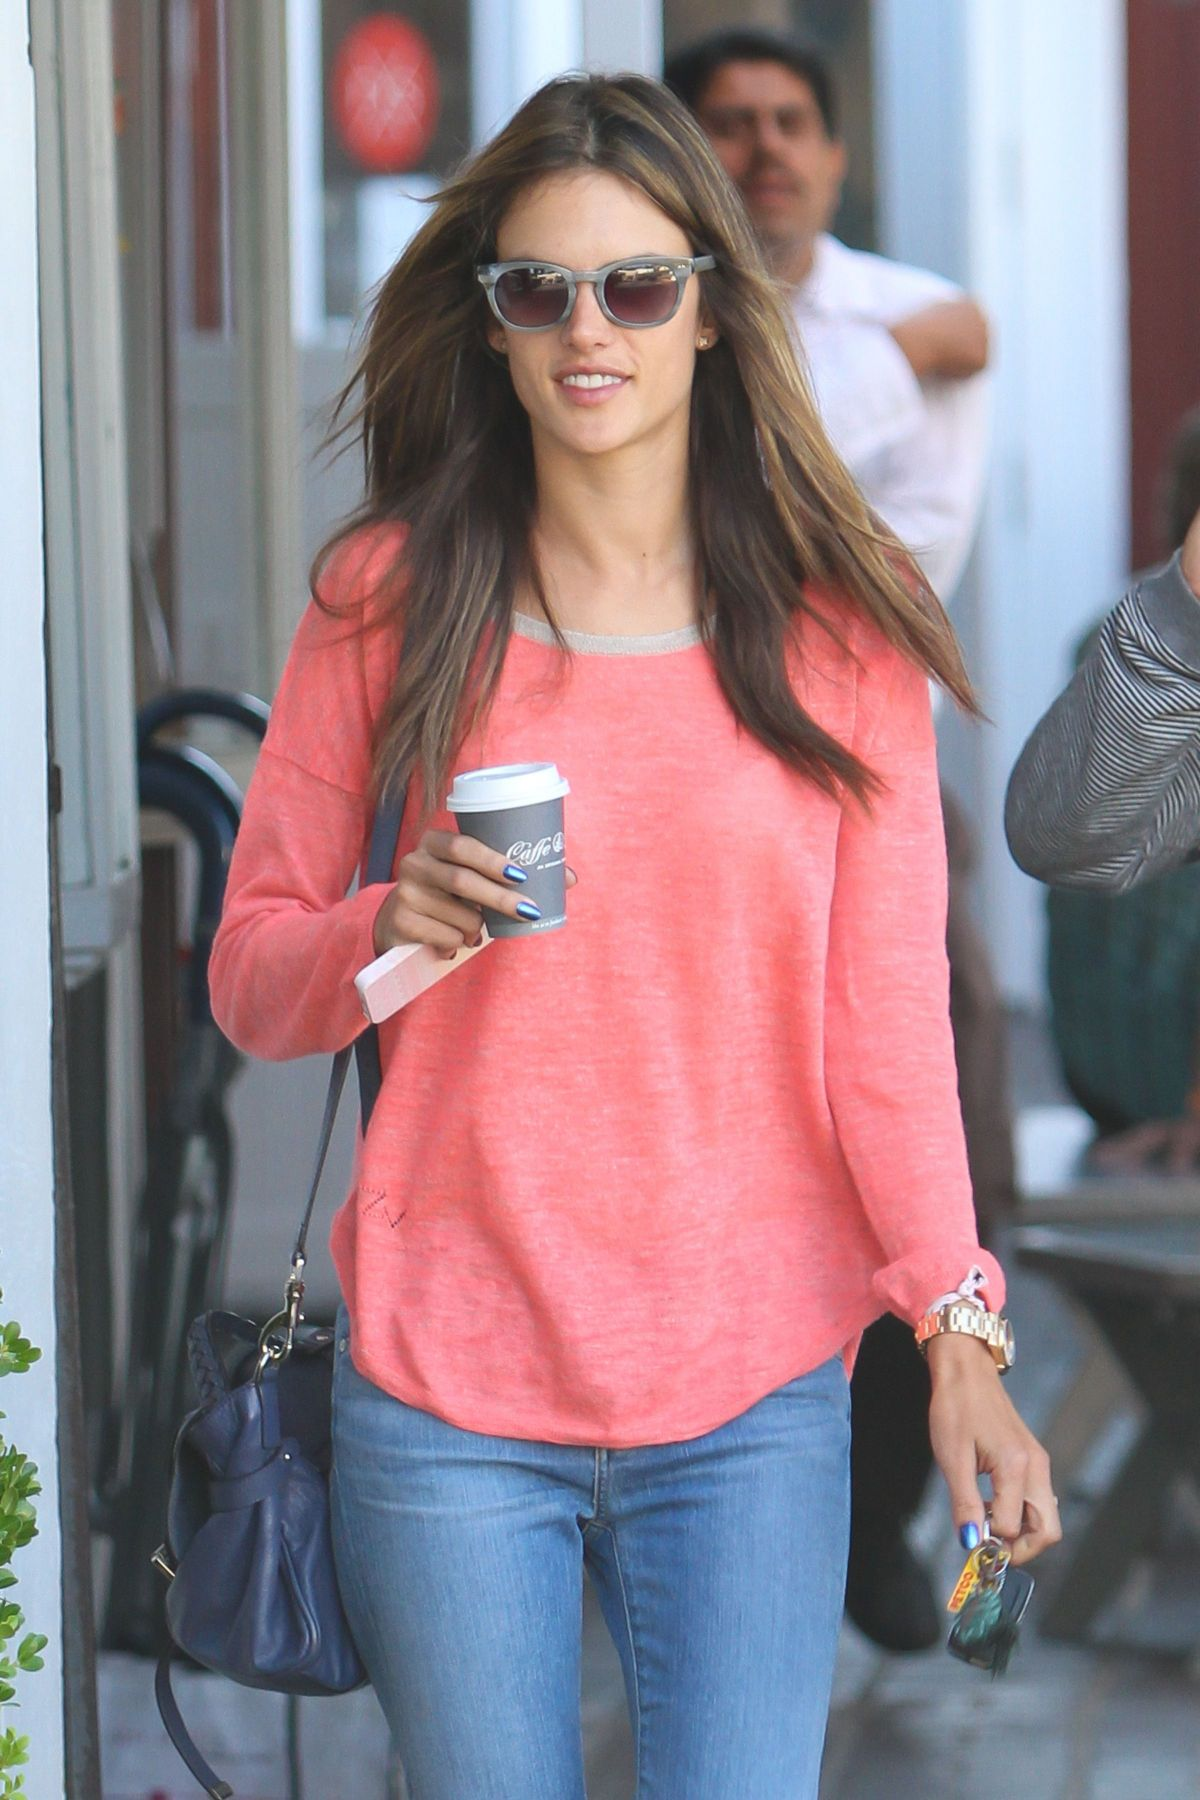 Alessandra Ambrosio Grabs Some Coffee While Shopping In LA